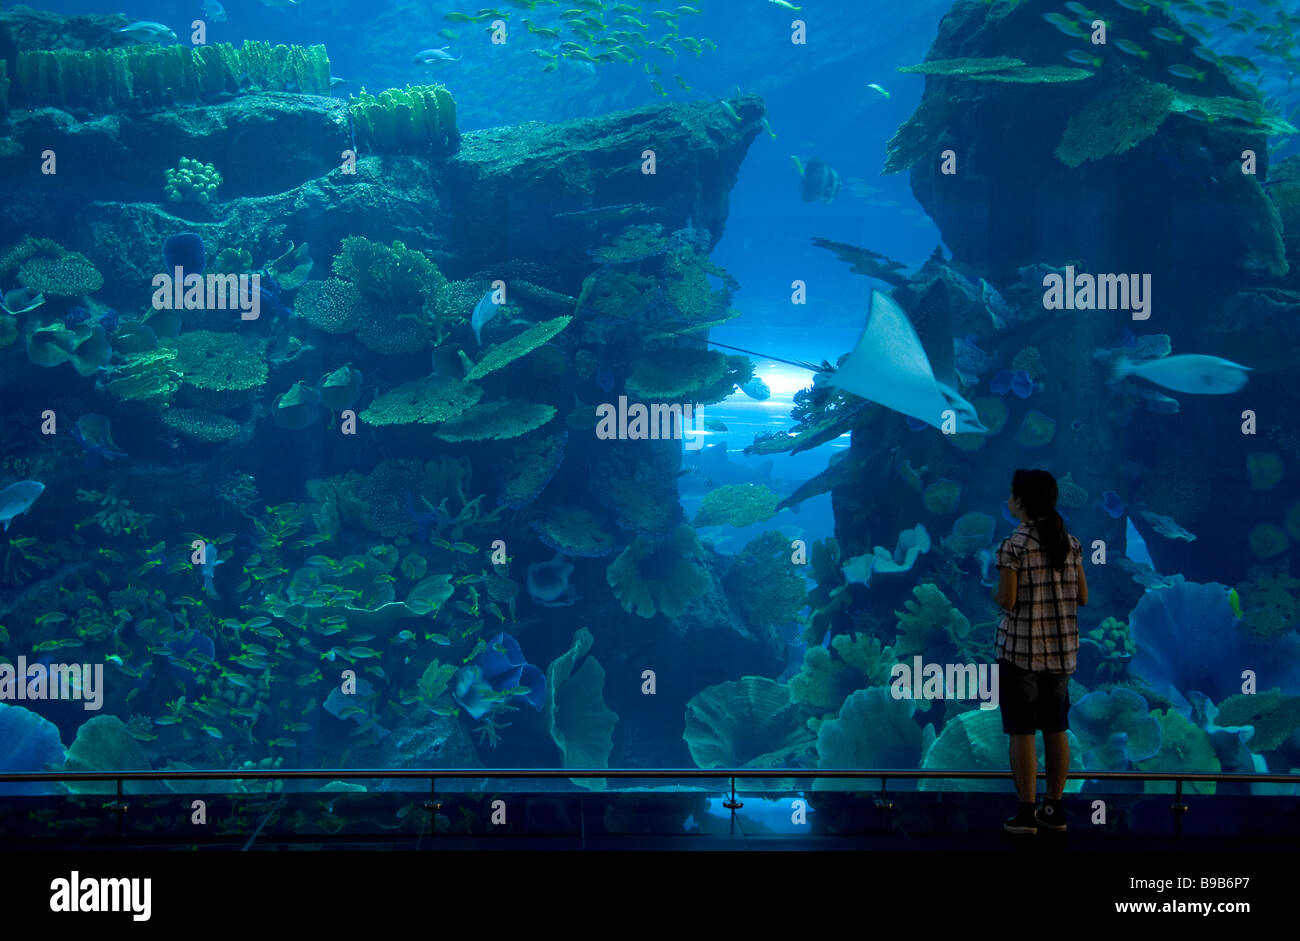 Fish aquarium in uae - Aquarium In Shopping Mall Dubai Uae